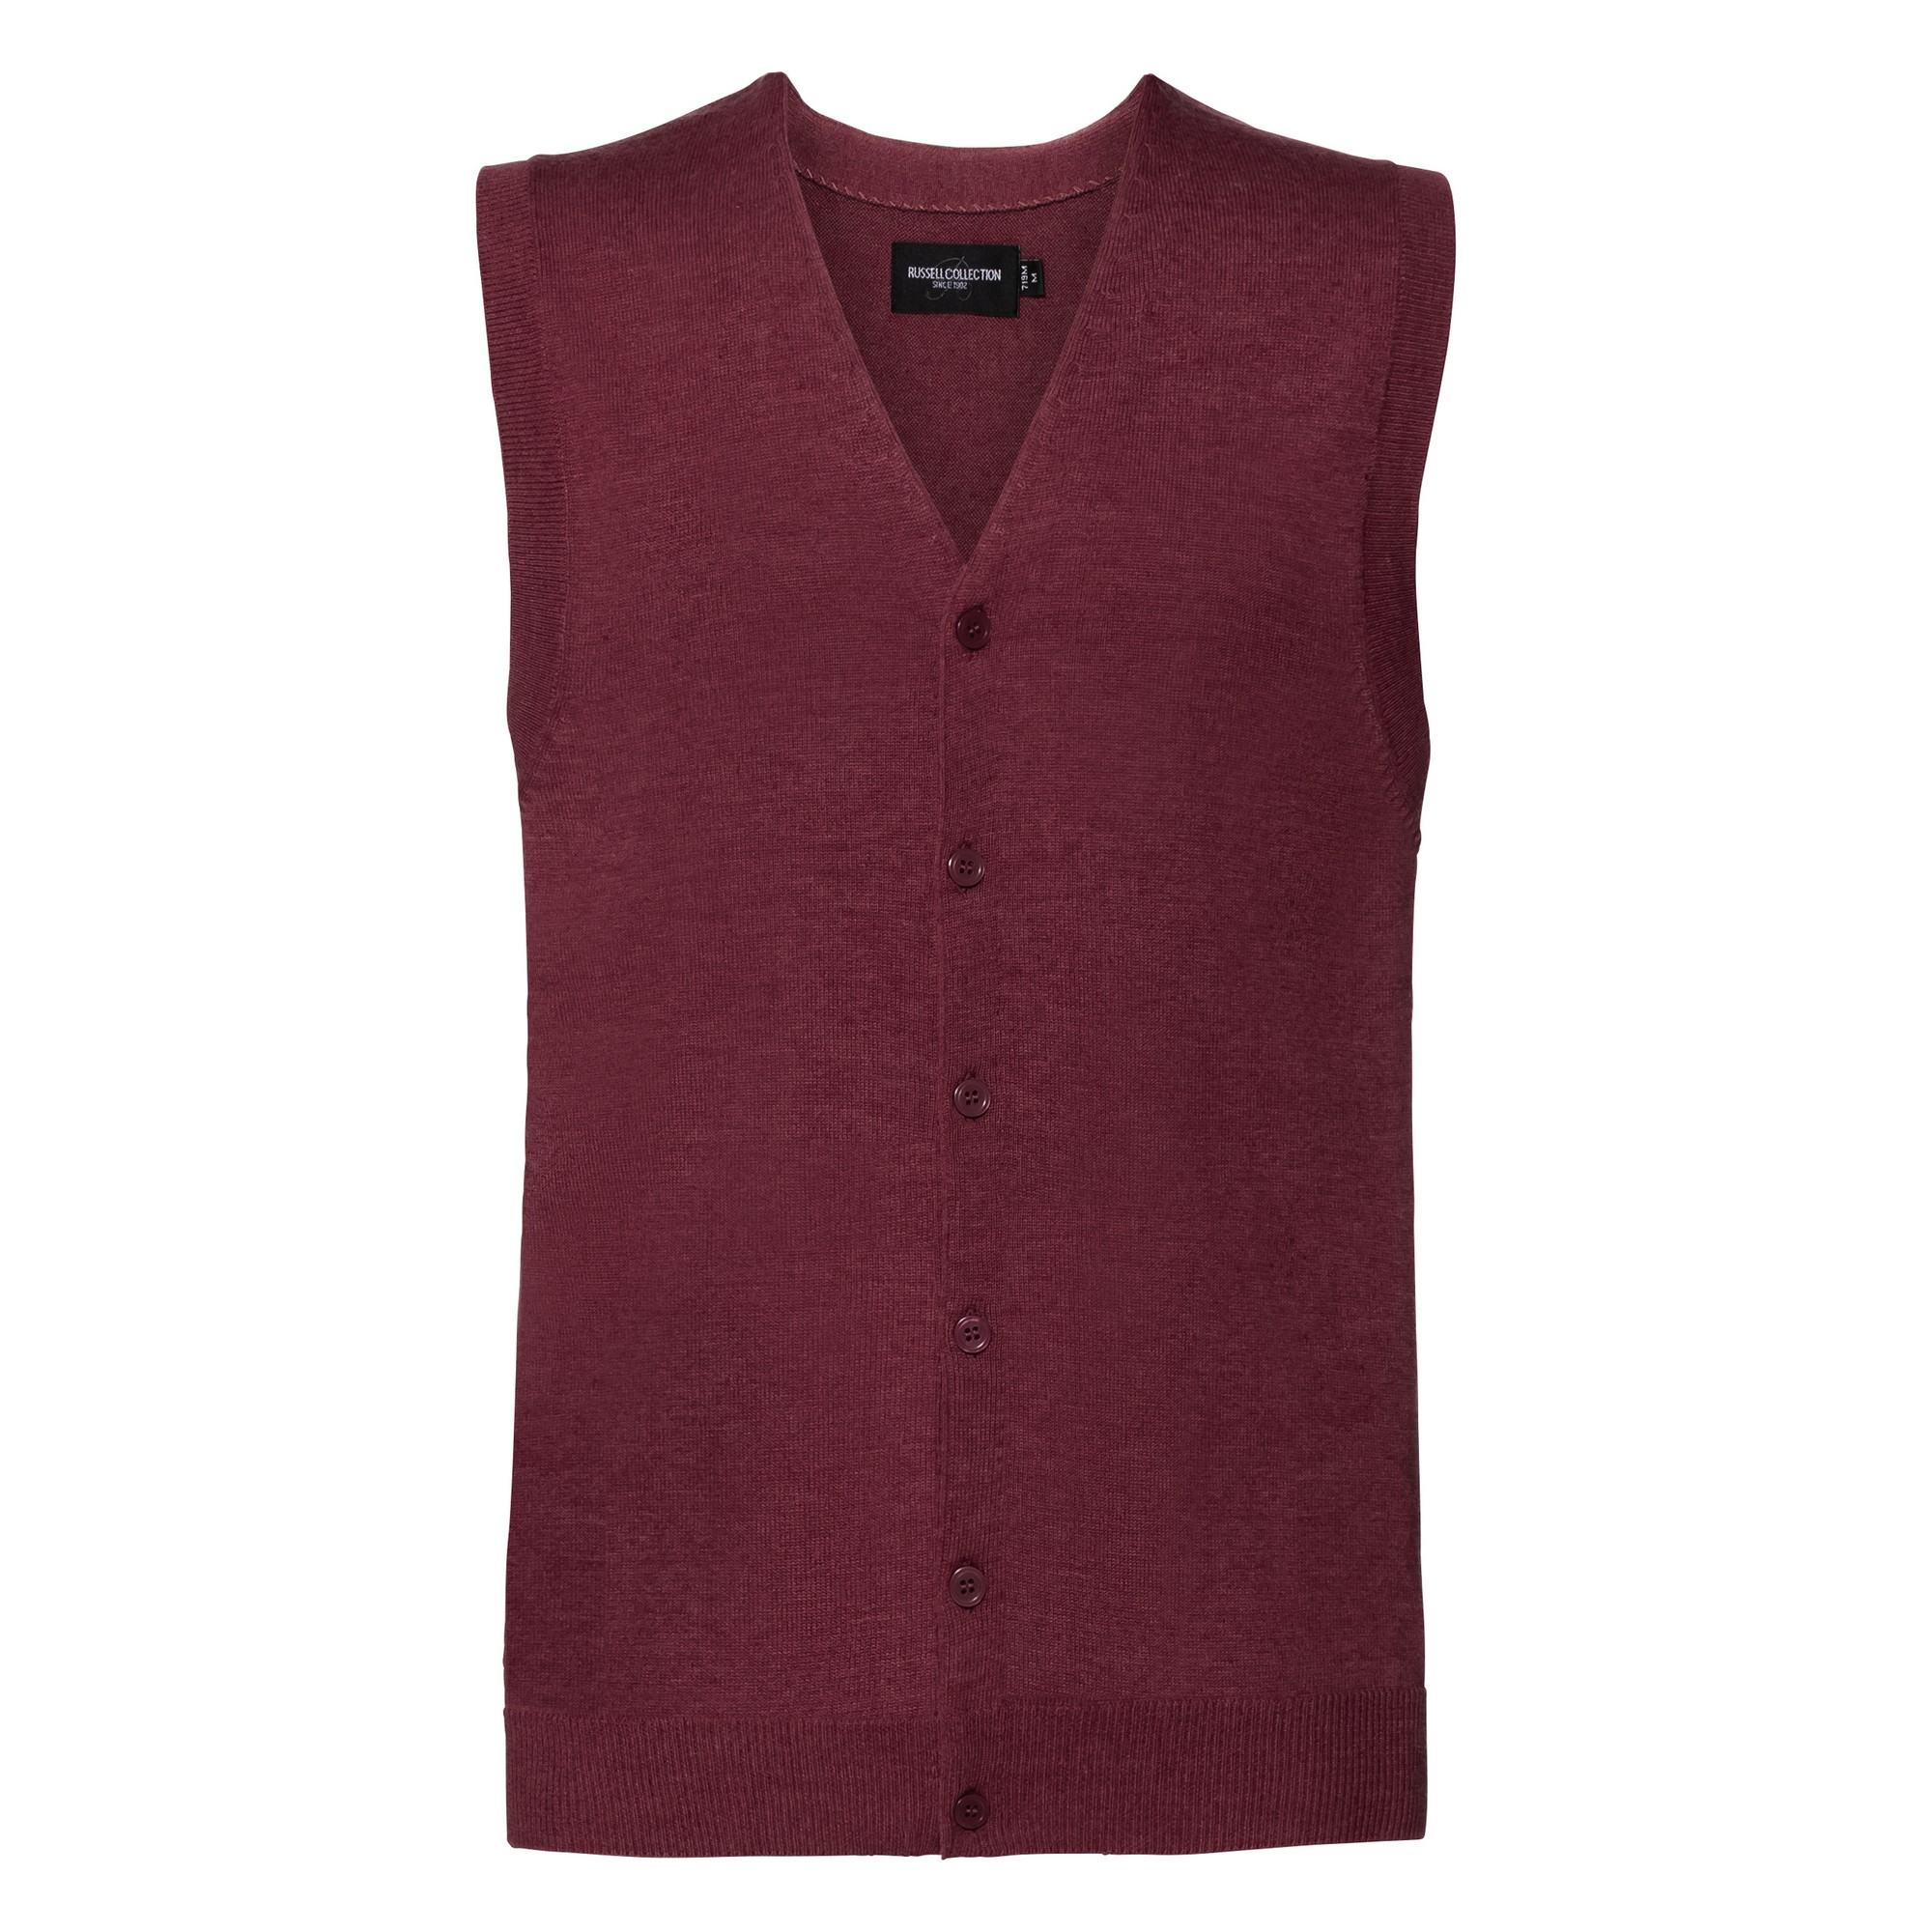 Russell Collection Mens V-neck Sleeveless Knitted Cardigan (4XL) (Cranberry Marl)